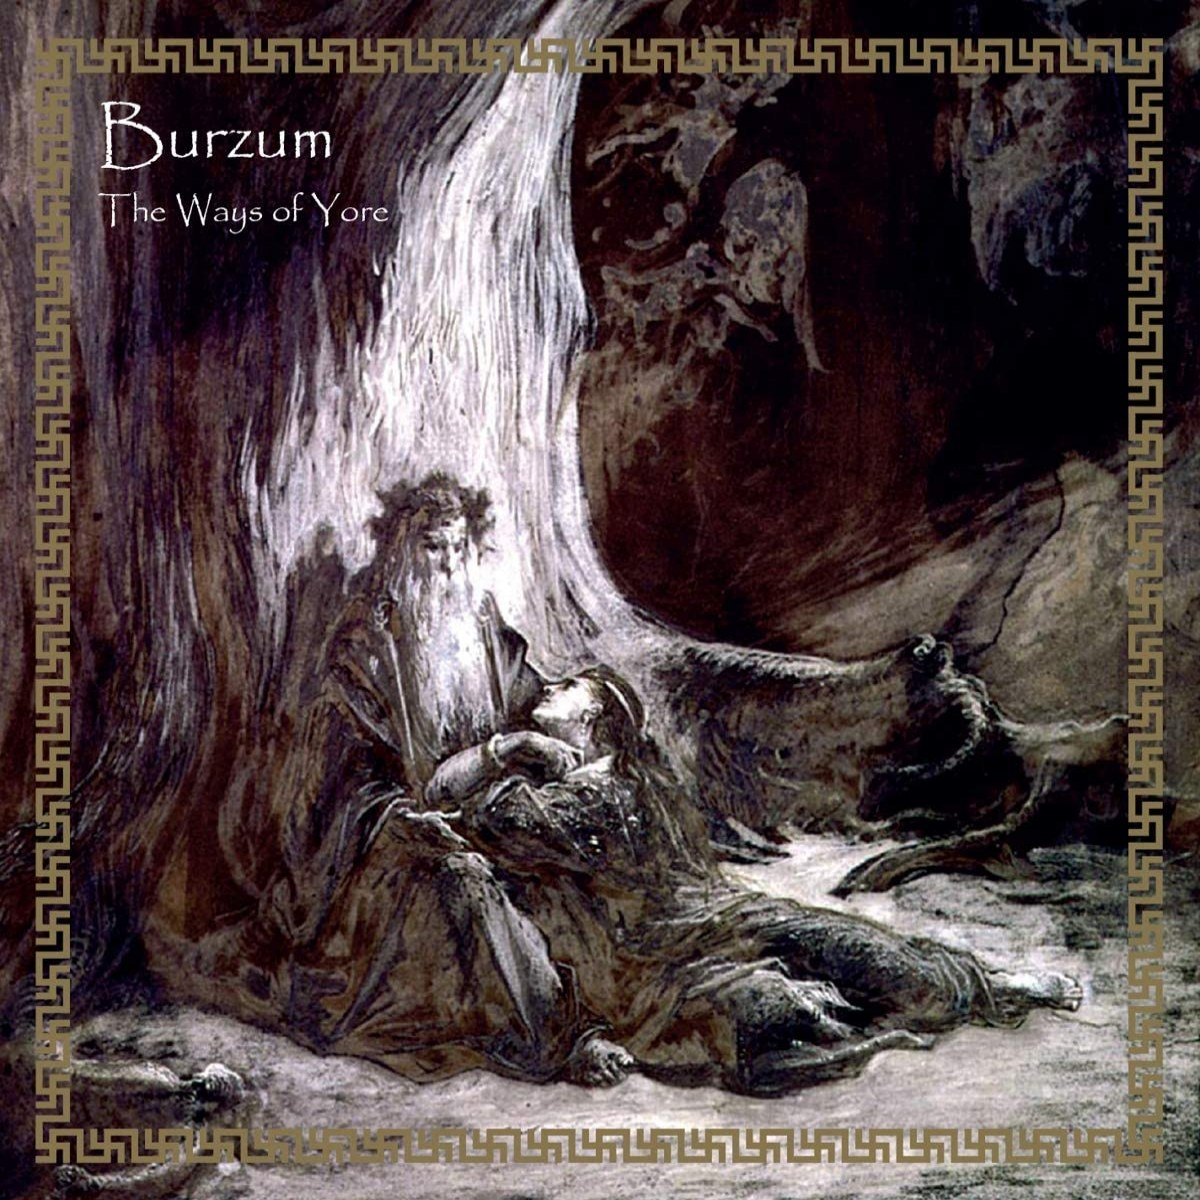 Review for Burzum - The Ways of Yore